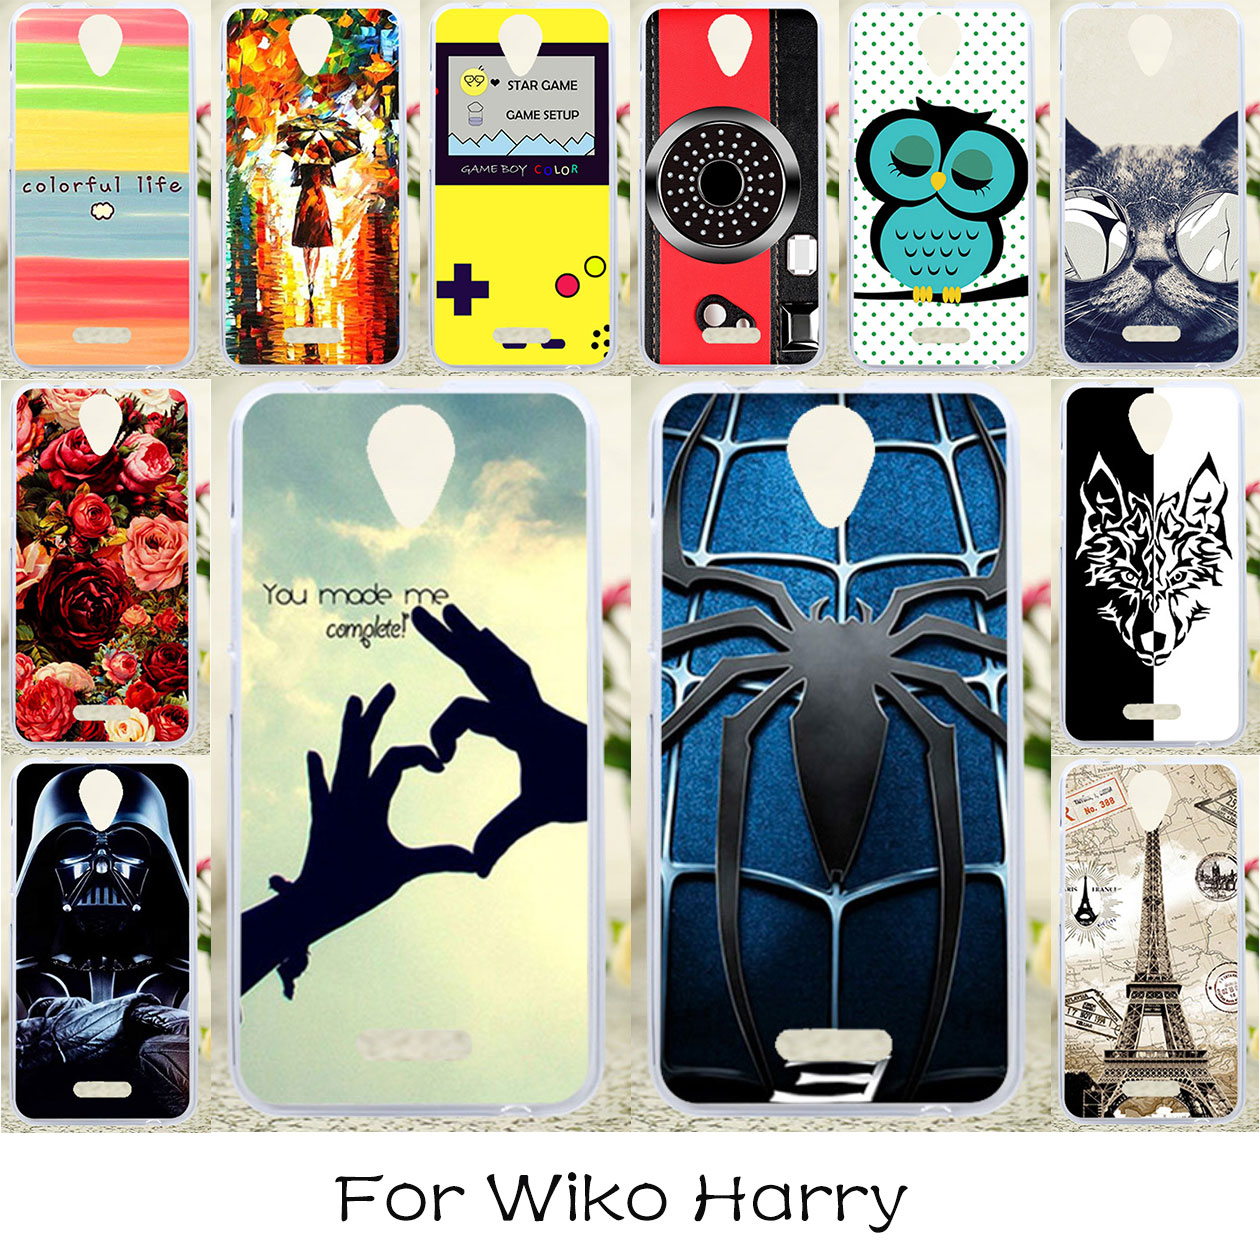 TAOYUNXI DIY Silicone Phone Covers Cases For Wiko Harry 5.0 INCH Flexible Housing Bag Anti-knock Cover Skin Case For Wiko Harry